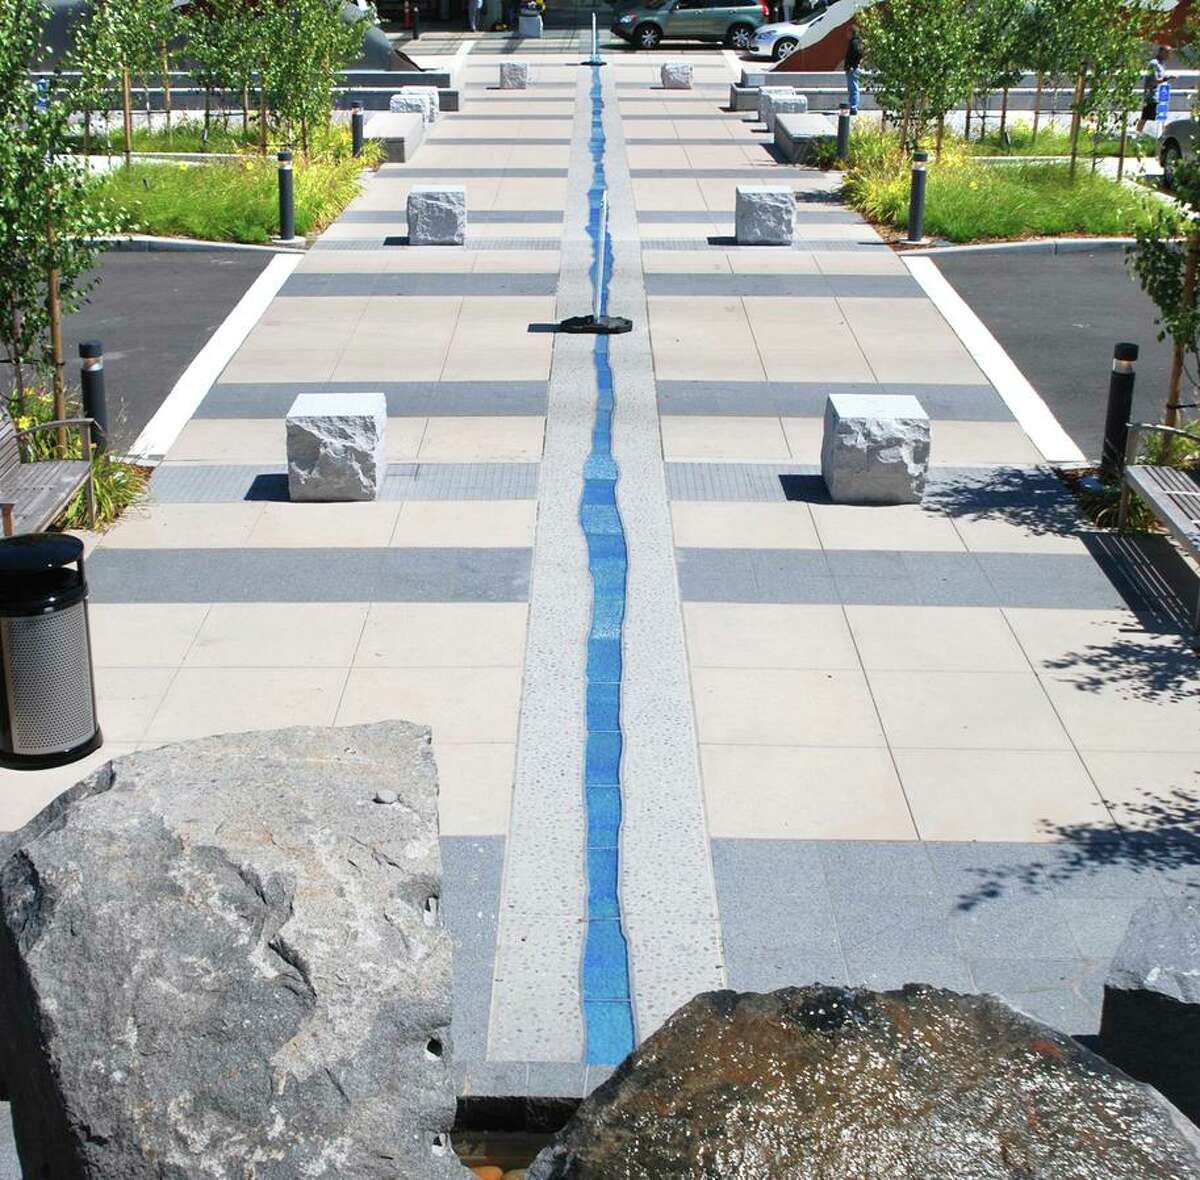 Gates + Associates, a landscape architecture firm based in San Ramon, used inlaid custom tile to create a calming water feature at the entry promenade of the John Muir Medical Center in Walnut Creek.